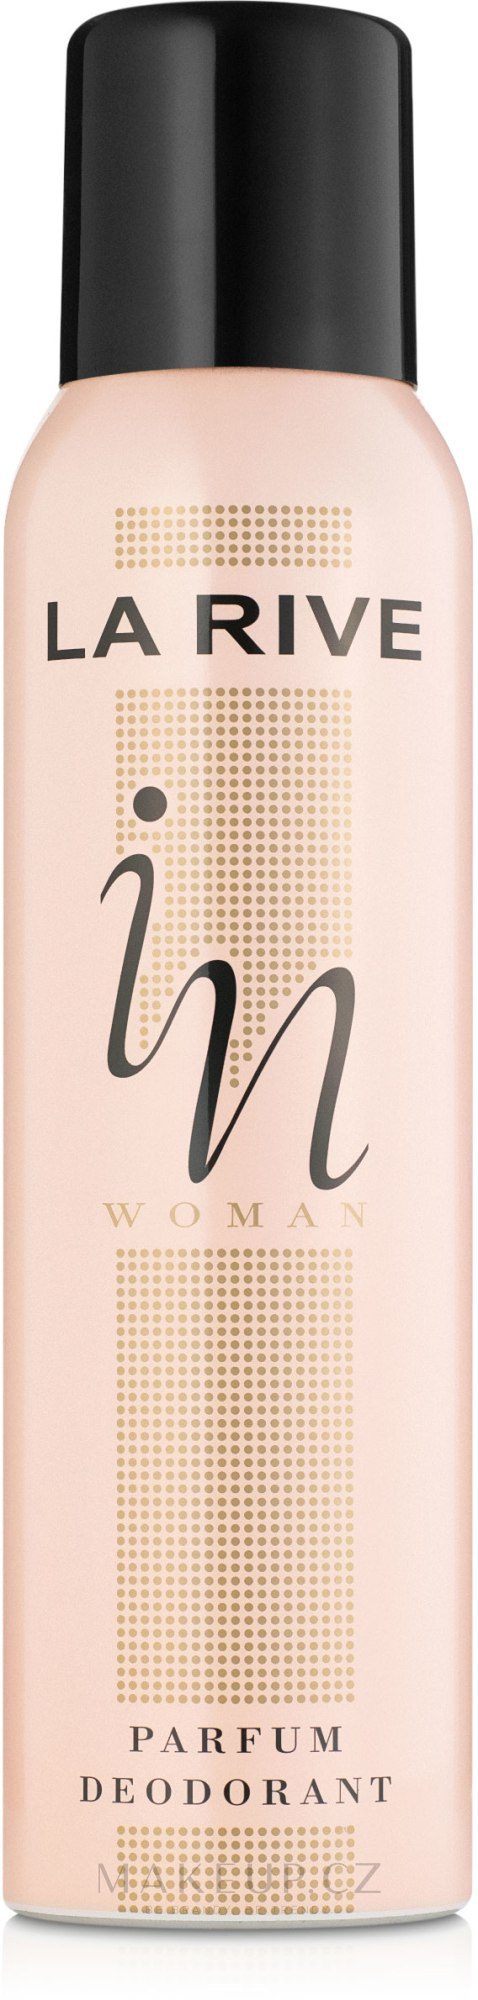 La Rive In Woman - Deodorant — foto 150 ml